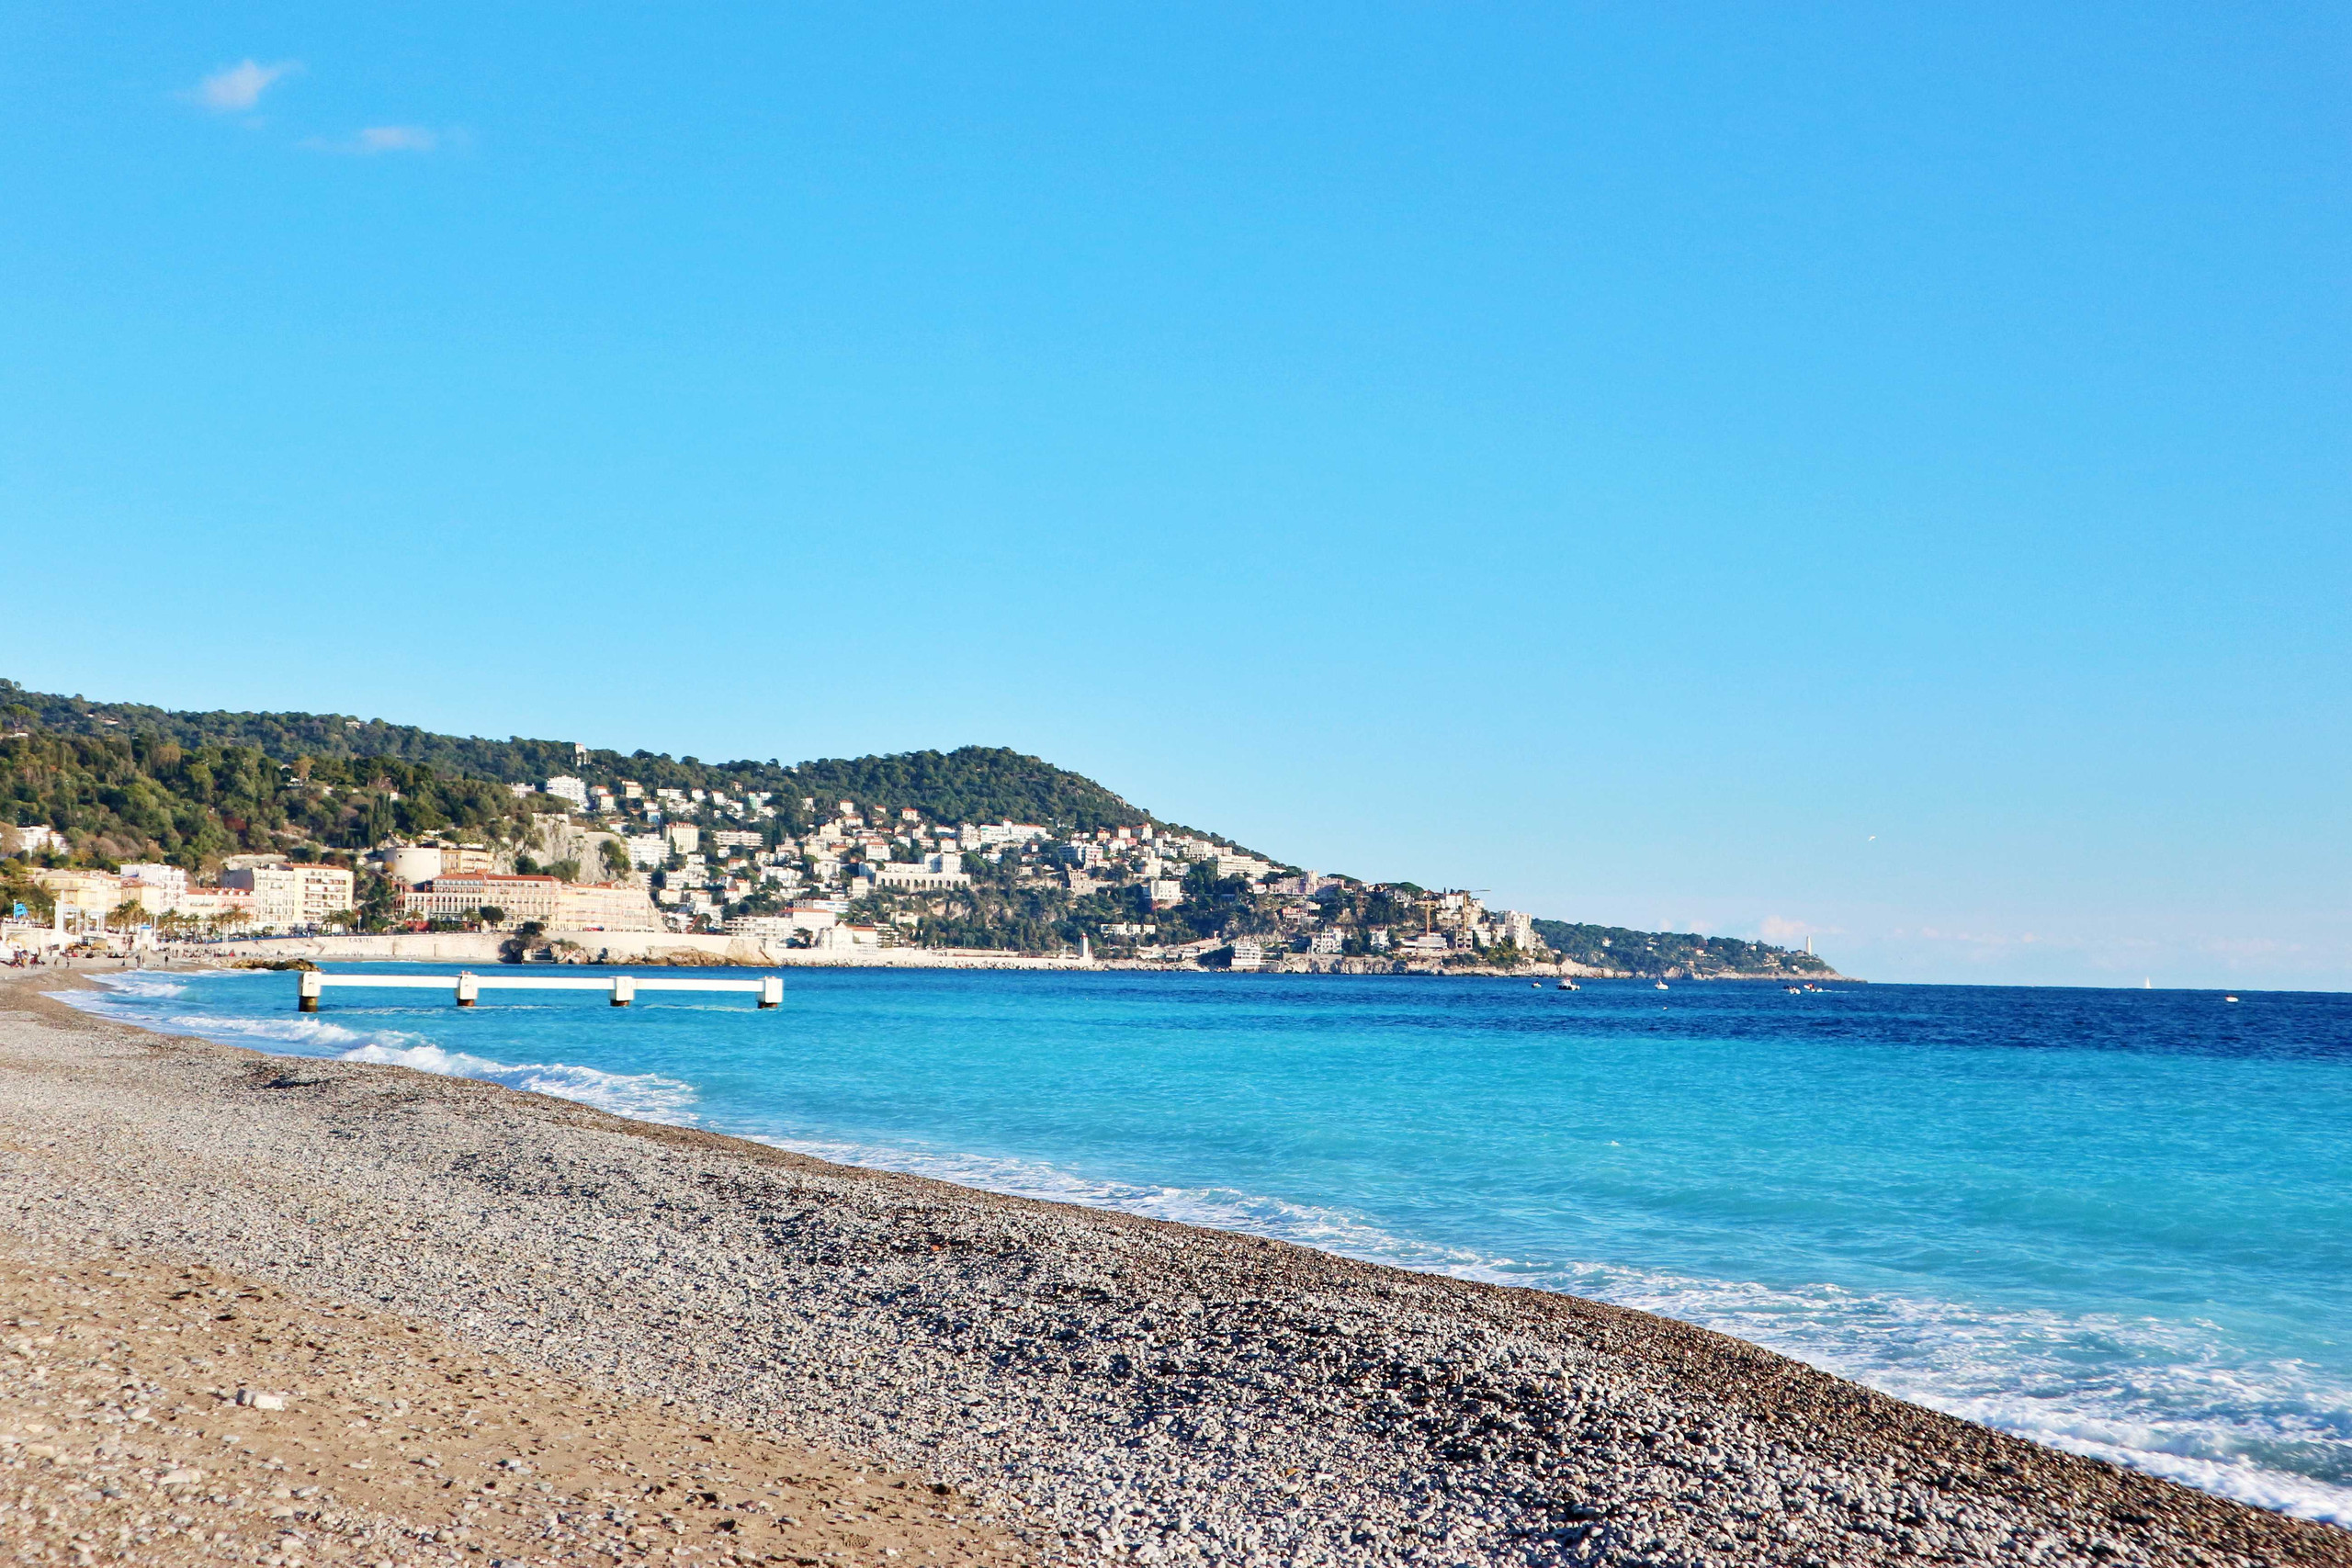 Plage de Carras, Nice, France in the day time